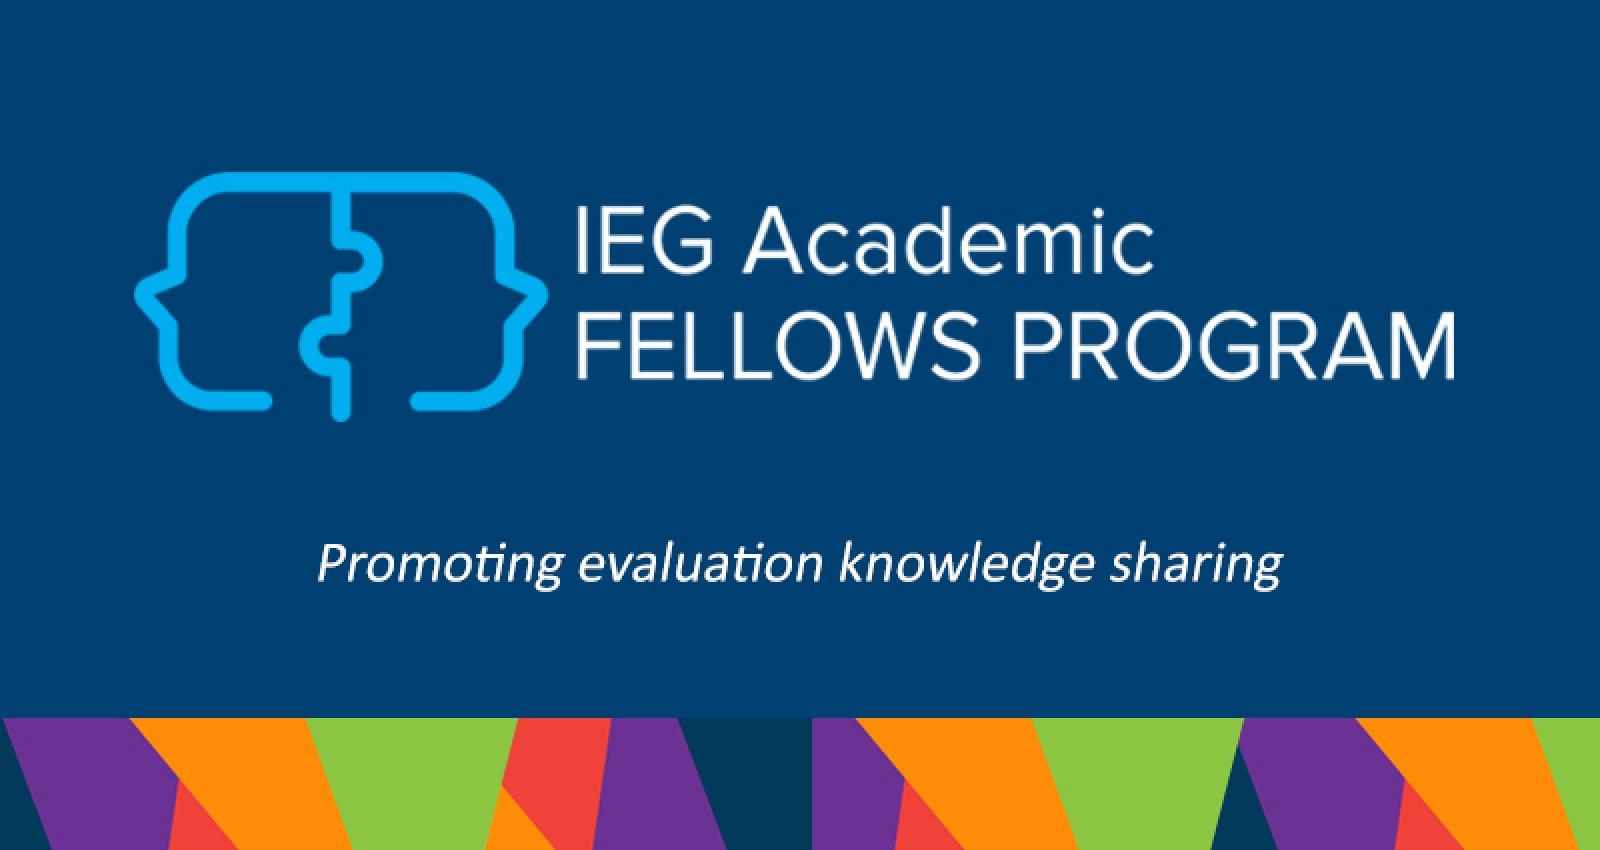 ieg academic fellows program, evaluation knowledge sharing